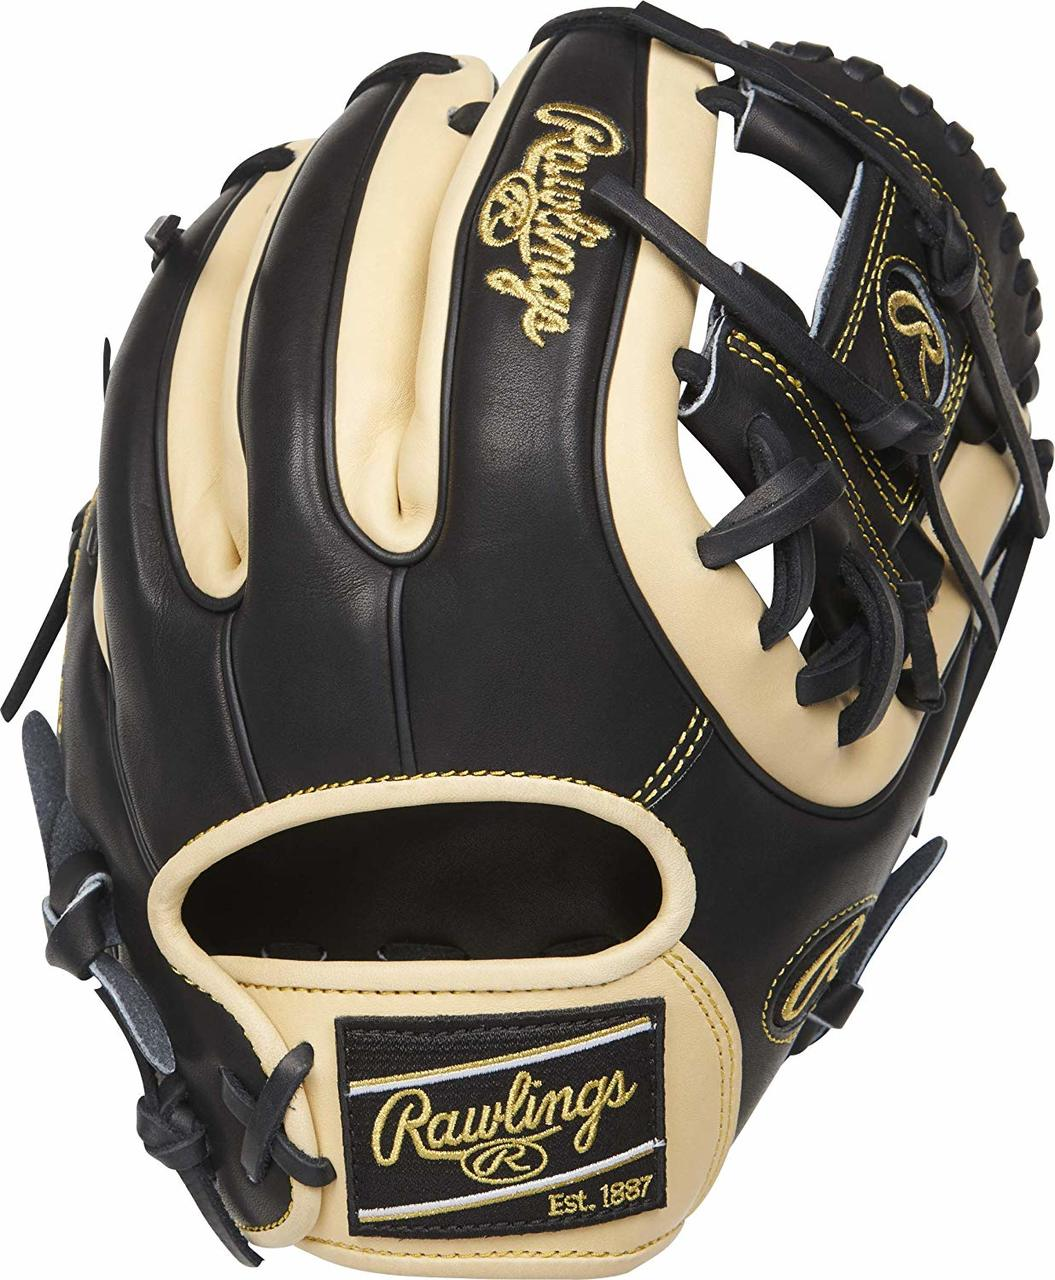 rawlings-heart-of-the-hide-pro312-2bc-baseball-glove-11-25-i-web-right-hand-throw PRO312--2BC-RightHandThrow  083321598838 This 11. 25-inch Heart of the Hide infield glove provides balanced